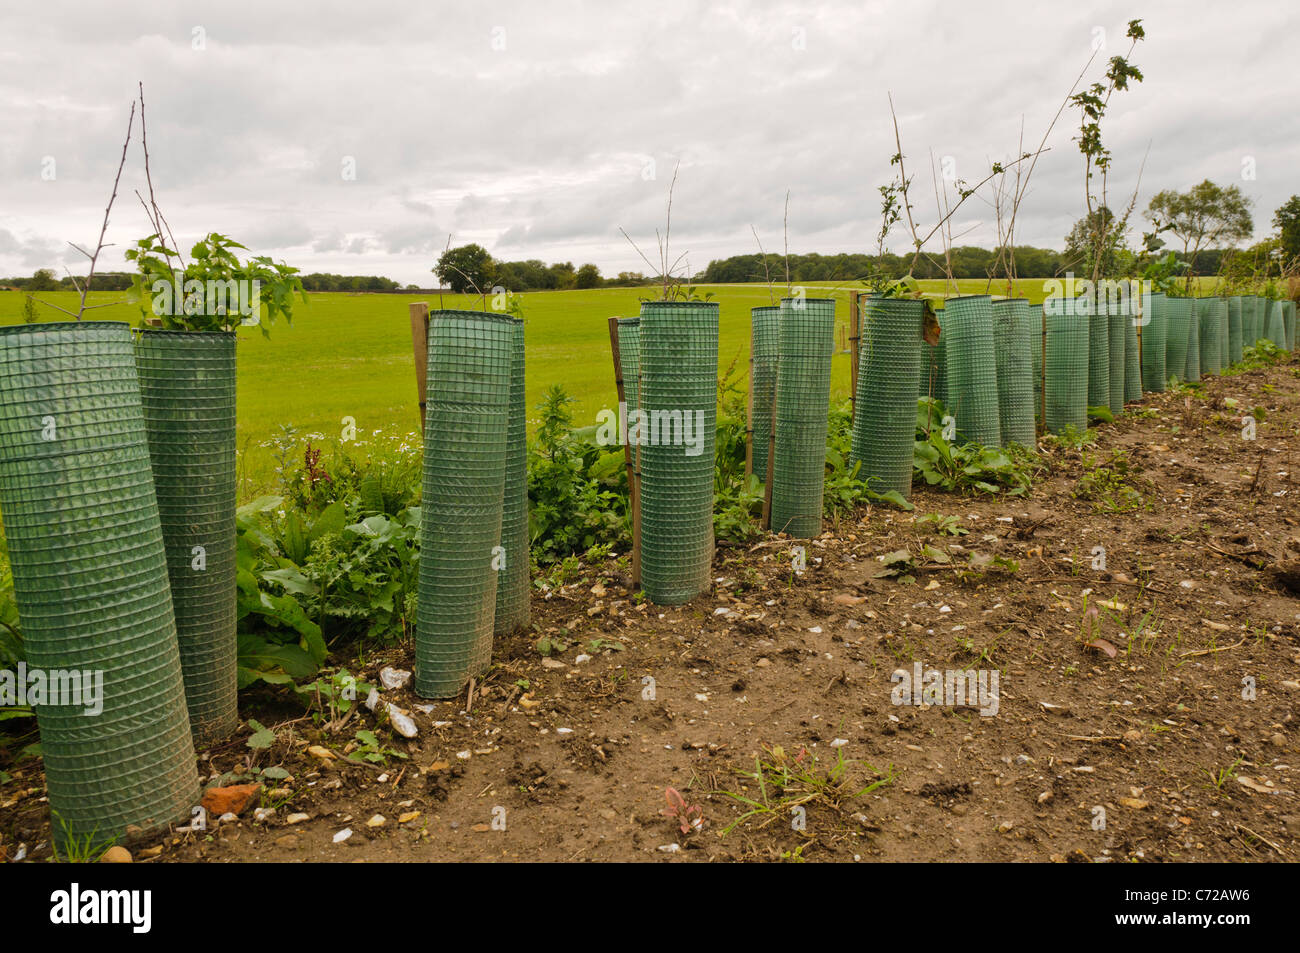 Newly planted row of hedging with protective tubes to prevent animal damage - Stock Image